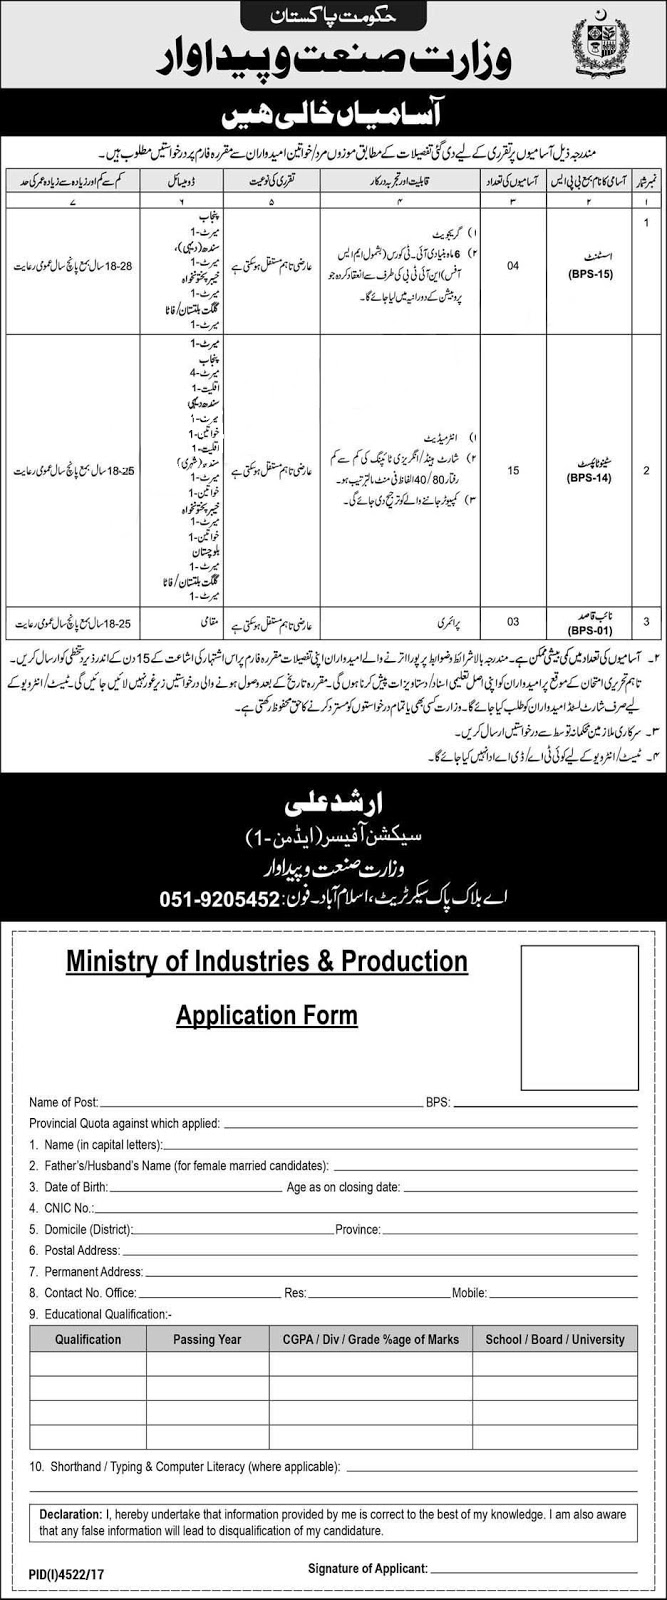 Ministry of industries production pakistan jobs 2018 for 22 jobs advertisement download or save it for clear view falaconquin